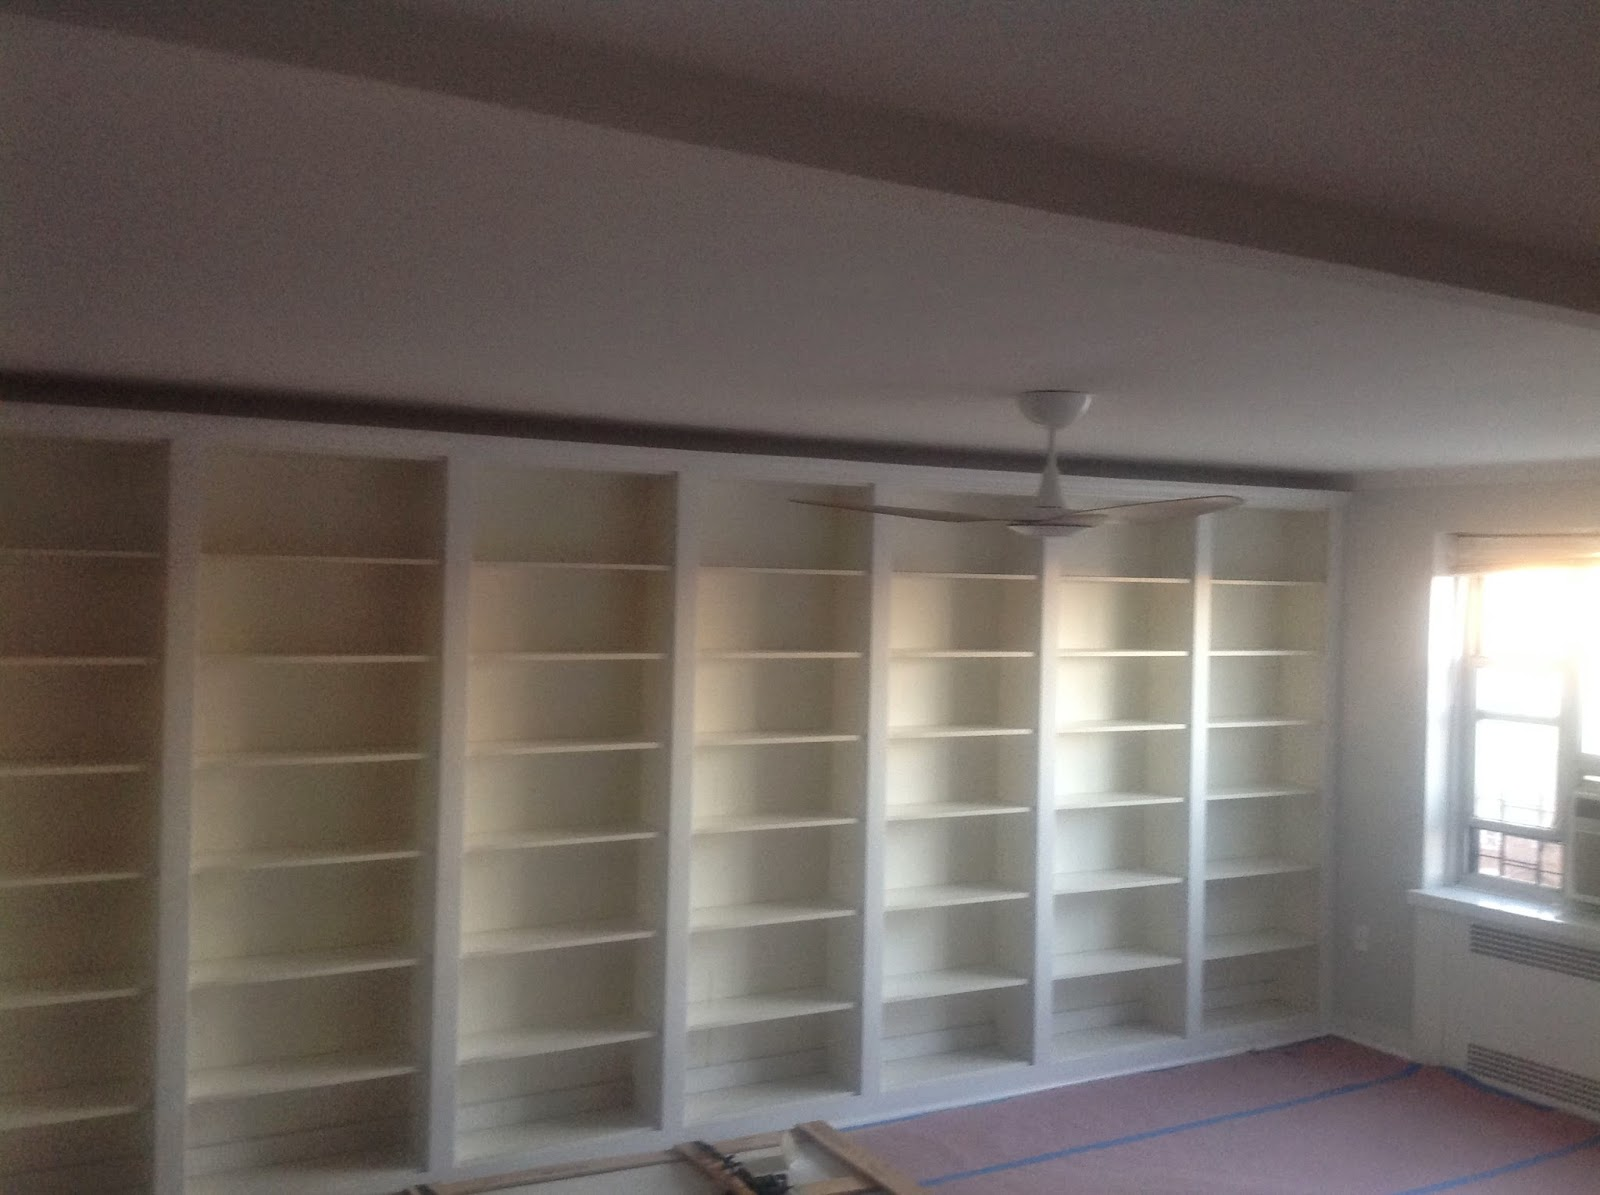 This Is The Phase Where Cabinets And Countertops Moldings